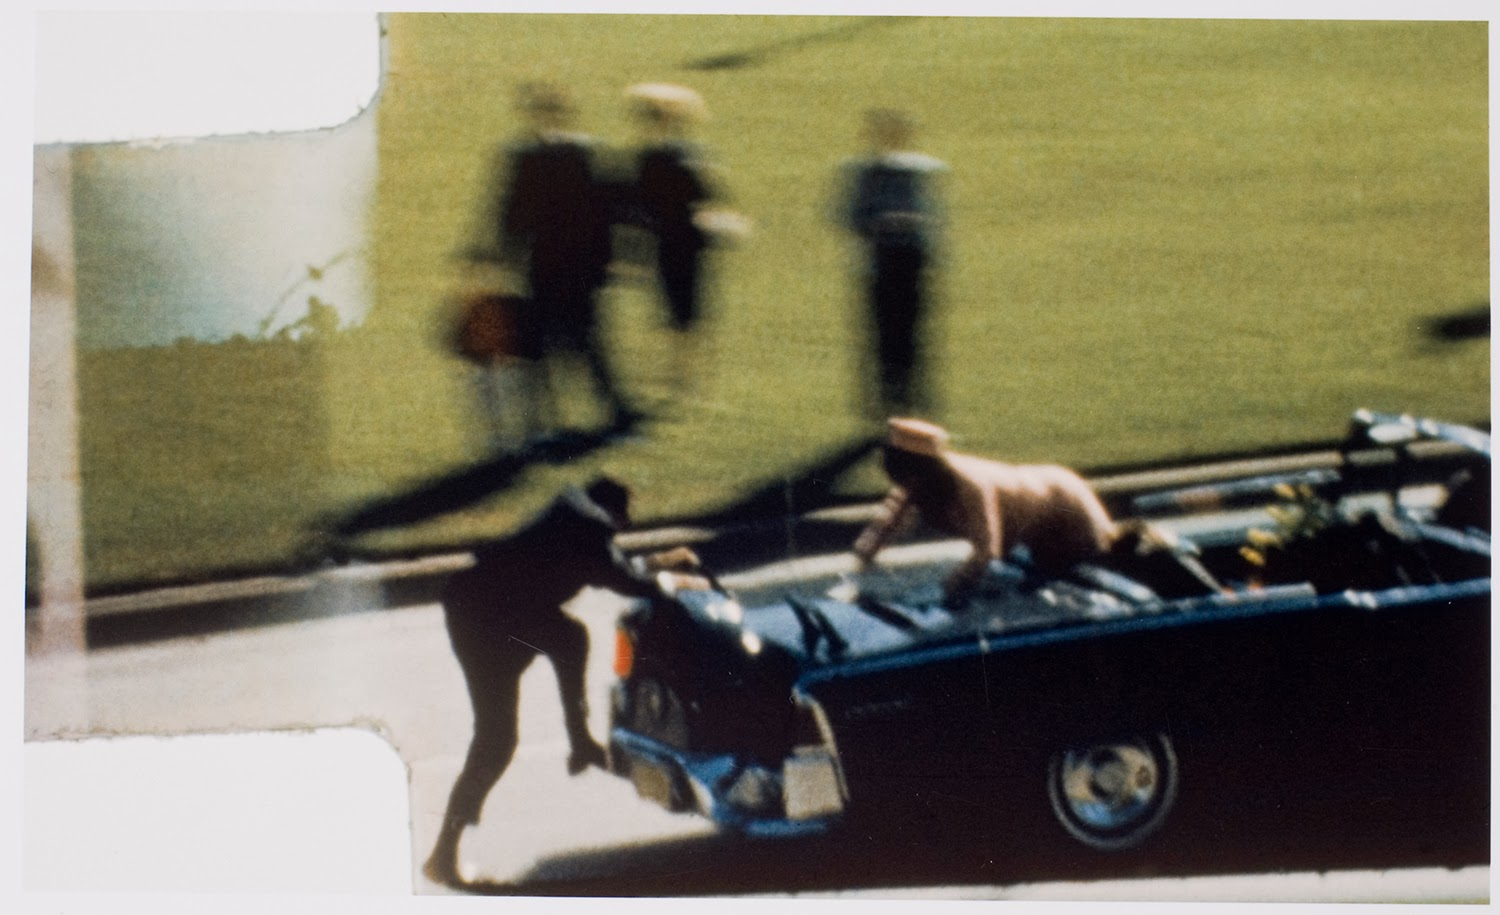 The Assassination of John F. Kennedy 50 Years Later